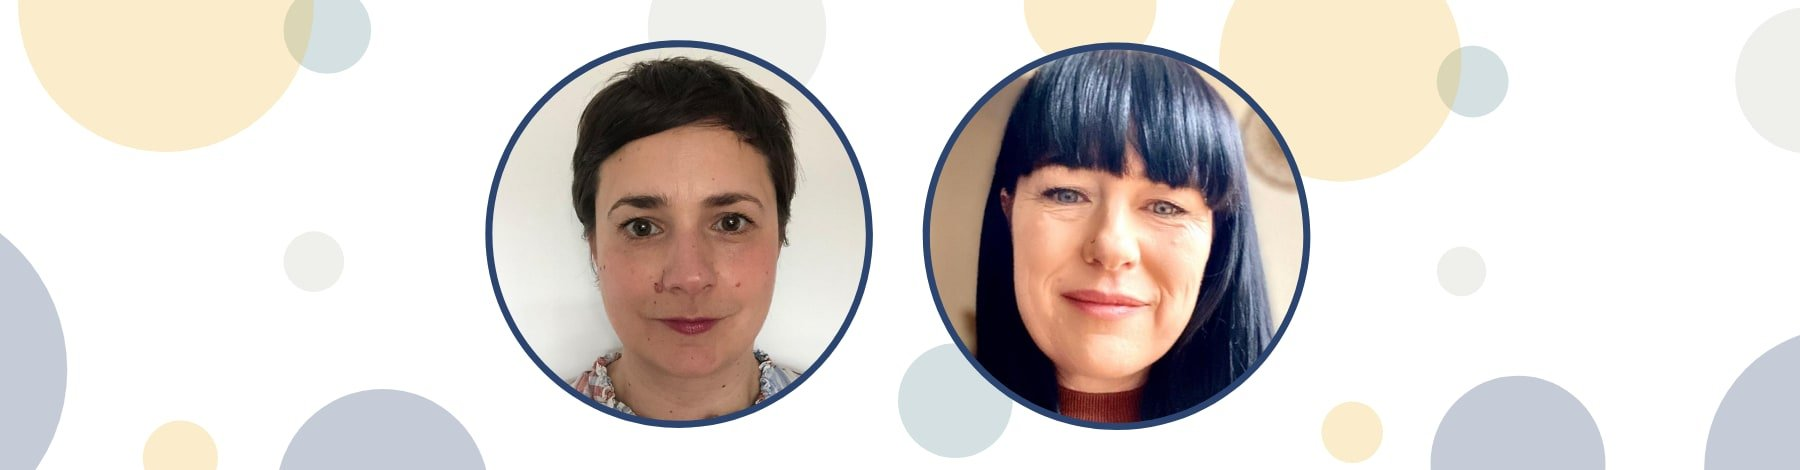 Meet the women leading Hestia's digital innovation projects